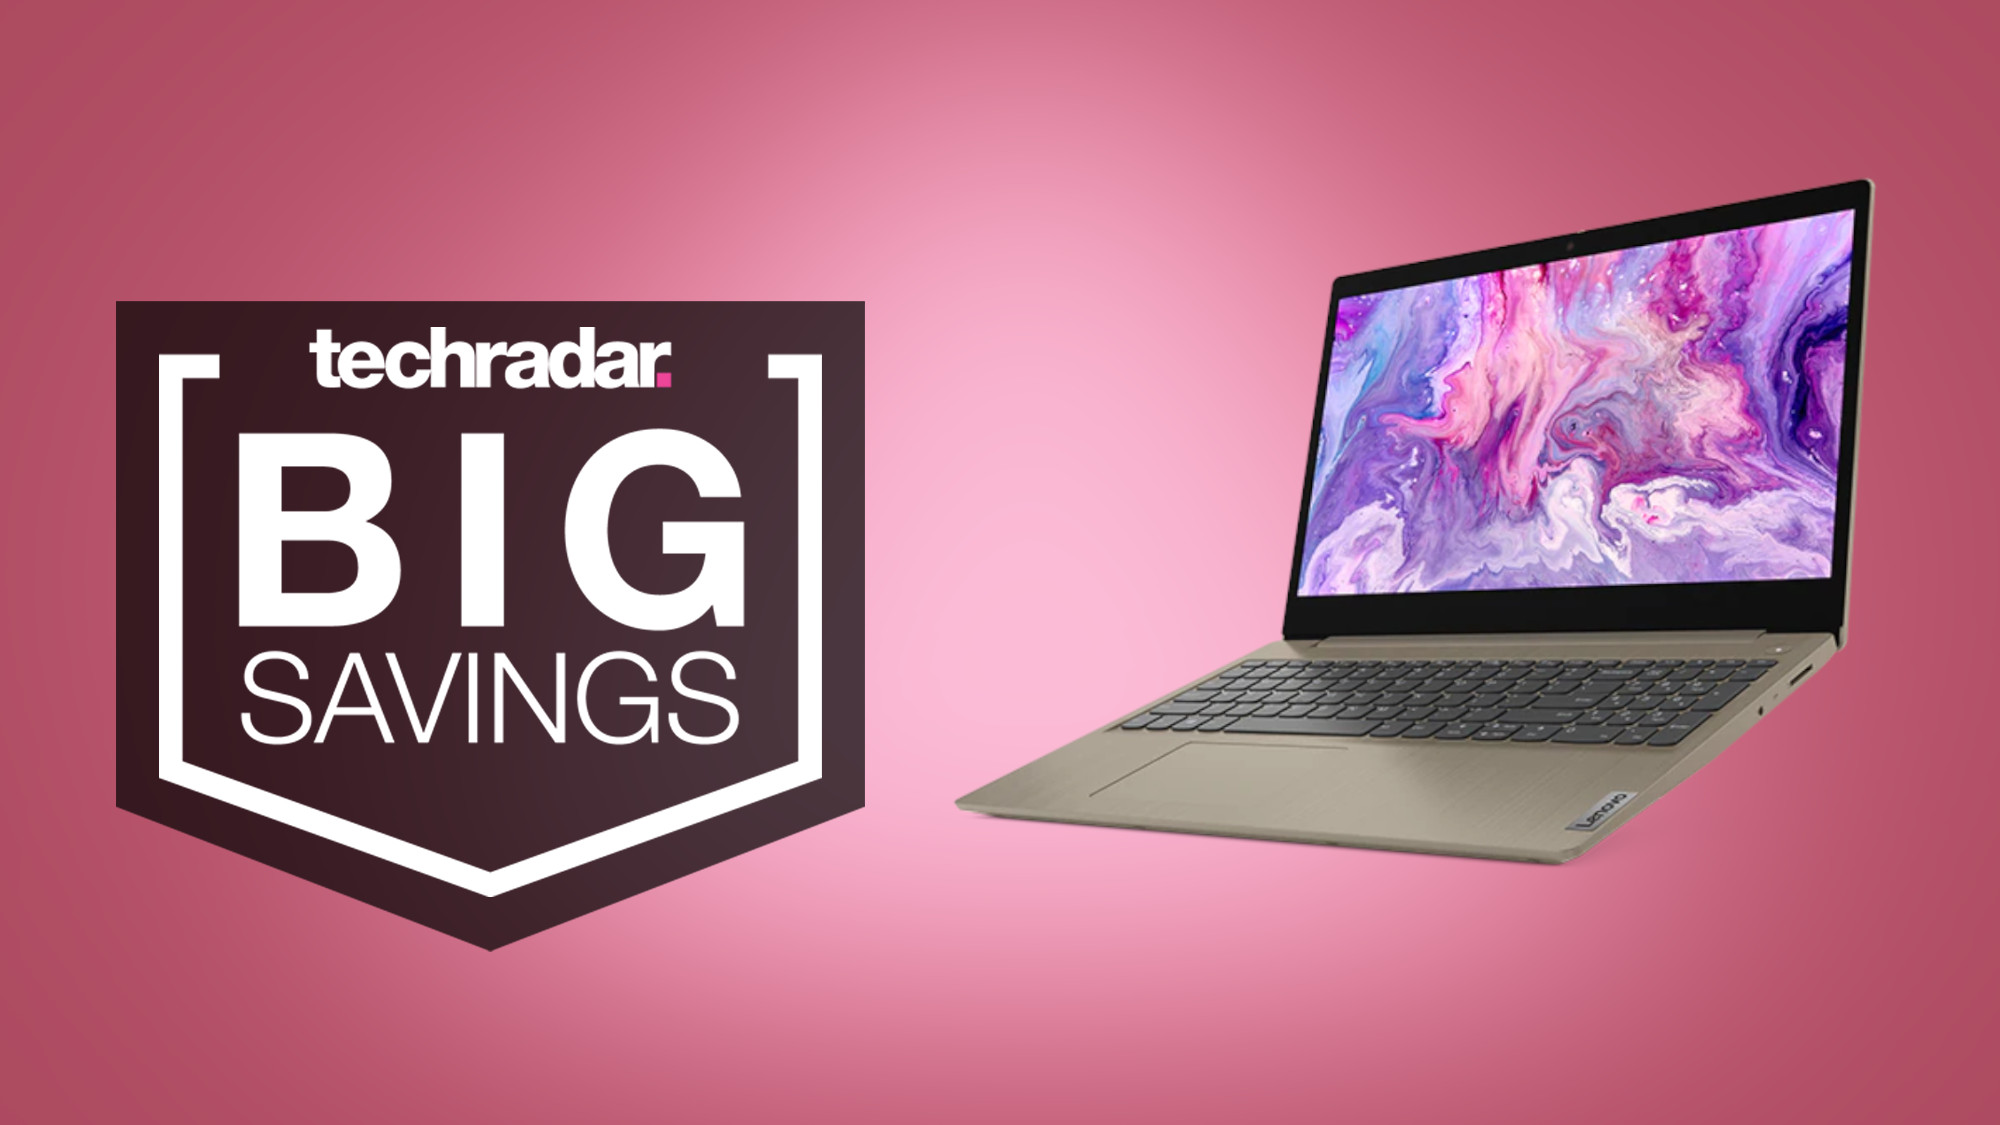 Black Friday Laptop Deals As Low As 149 Are Selling Out Fast Right Now At Walmart Techradar